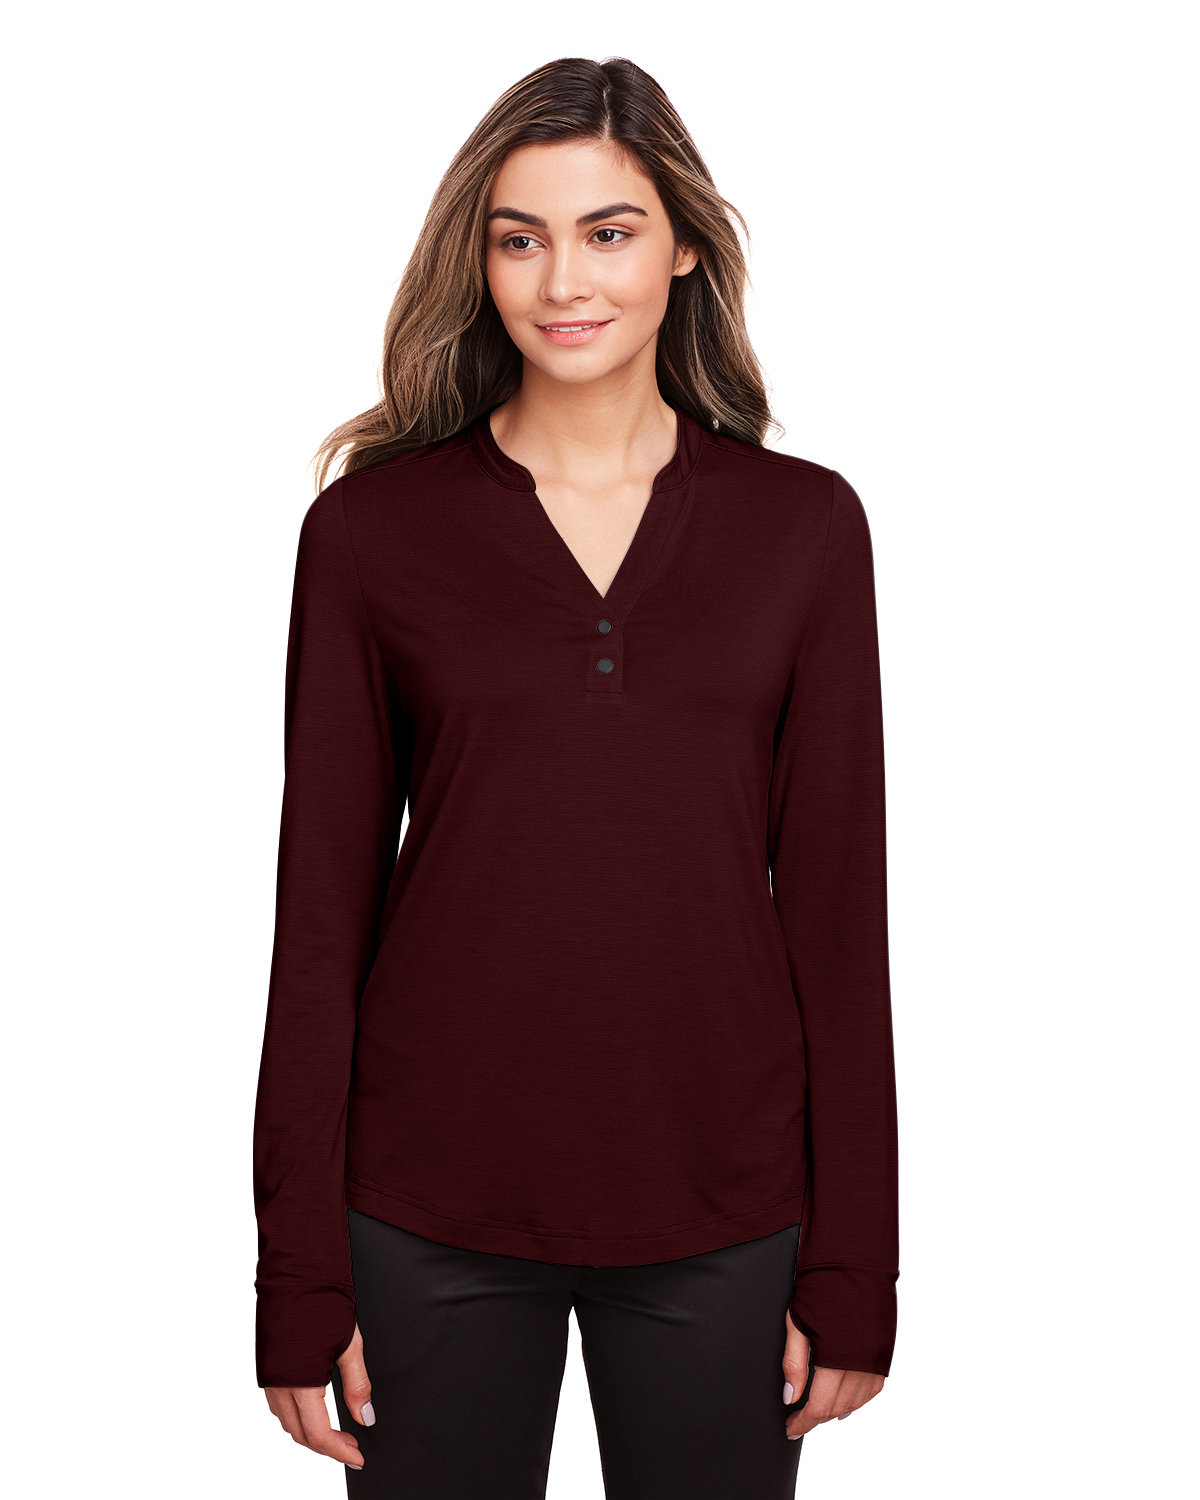 North End Ladies' Jaq Snap-Up Stretch Performance Pullover BURGUNDY